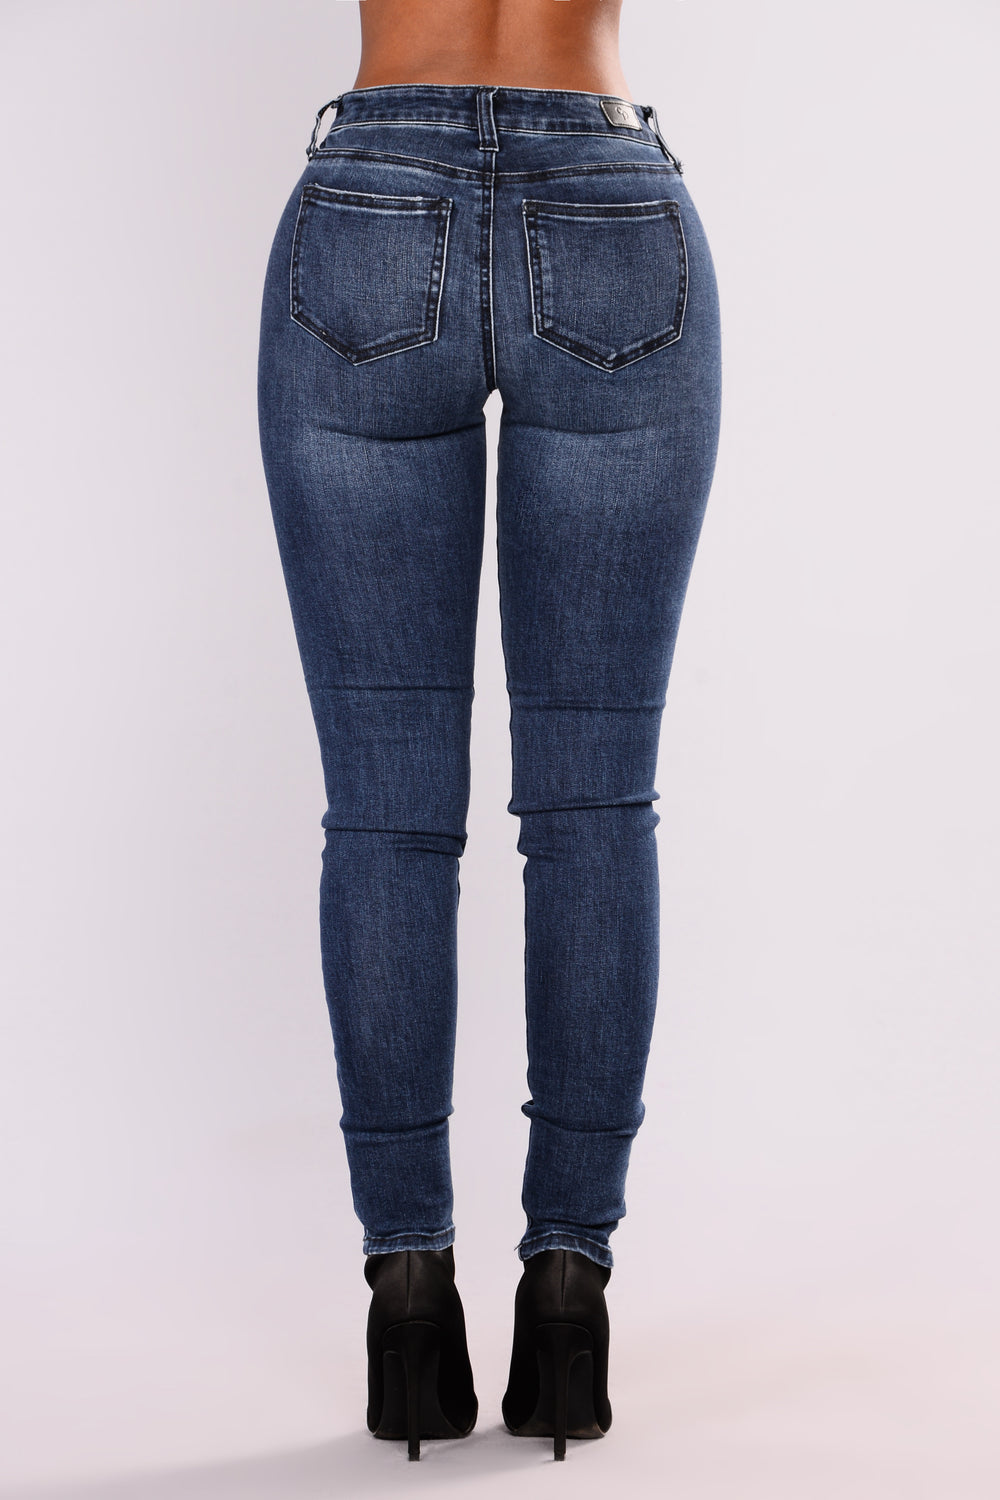 Truly Great Skinny Jeans - Dark Denim